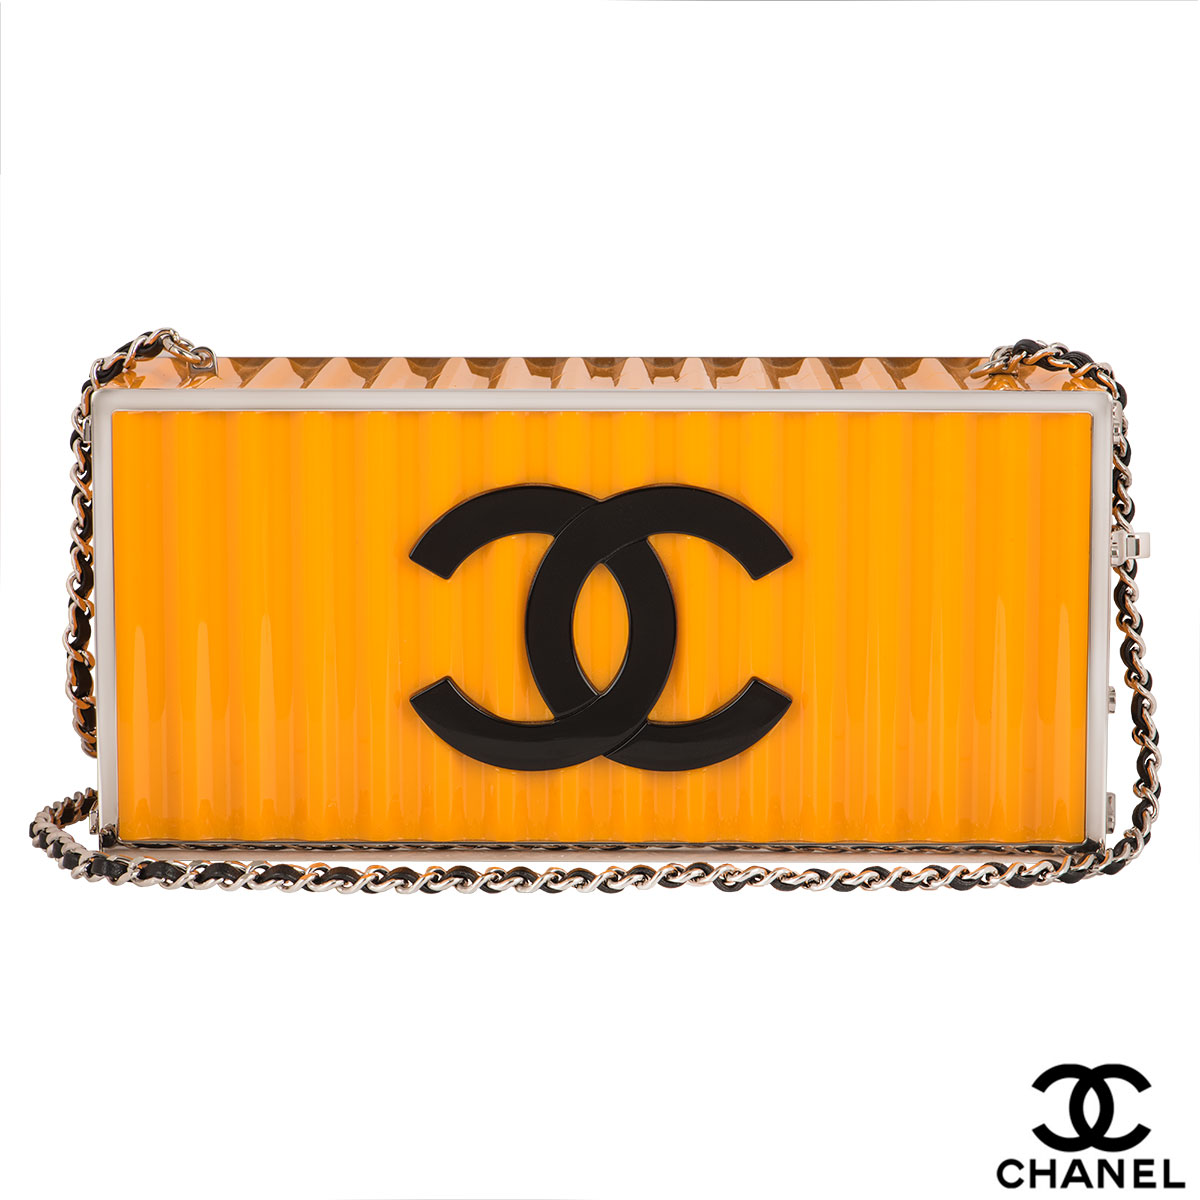 Chanel Paris-Hamburg Yellow Lucite Shipping Container Clutch Bag